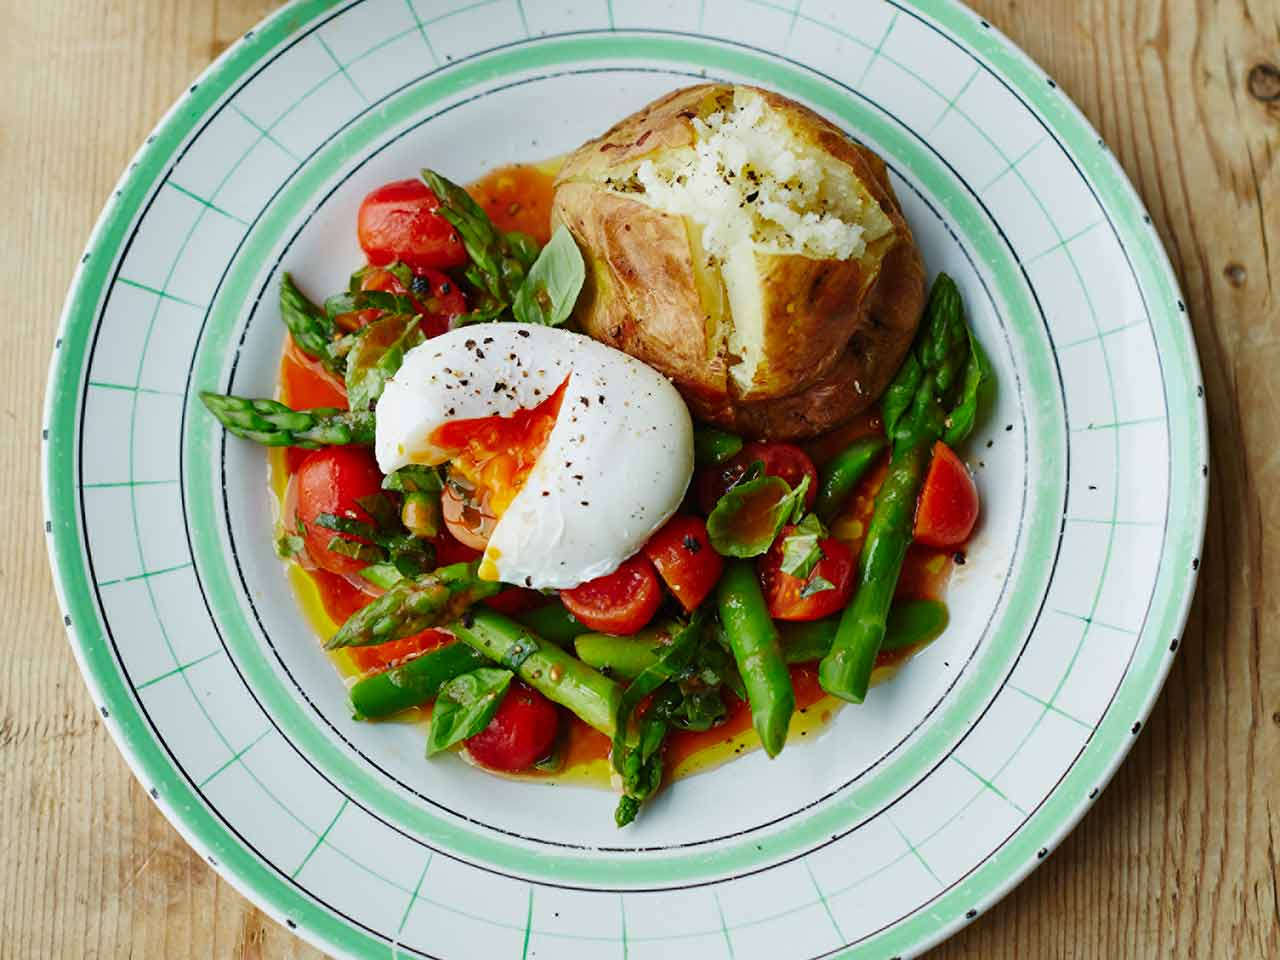 Alex Mackay's baked King Edwards with asparagus, poached egg and tomato dressing with basil